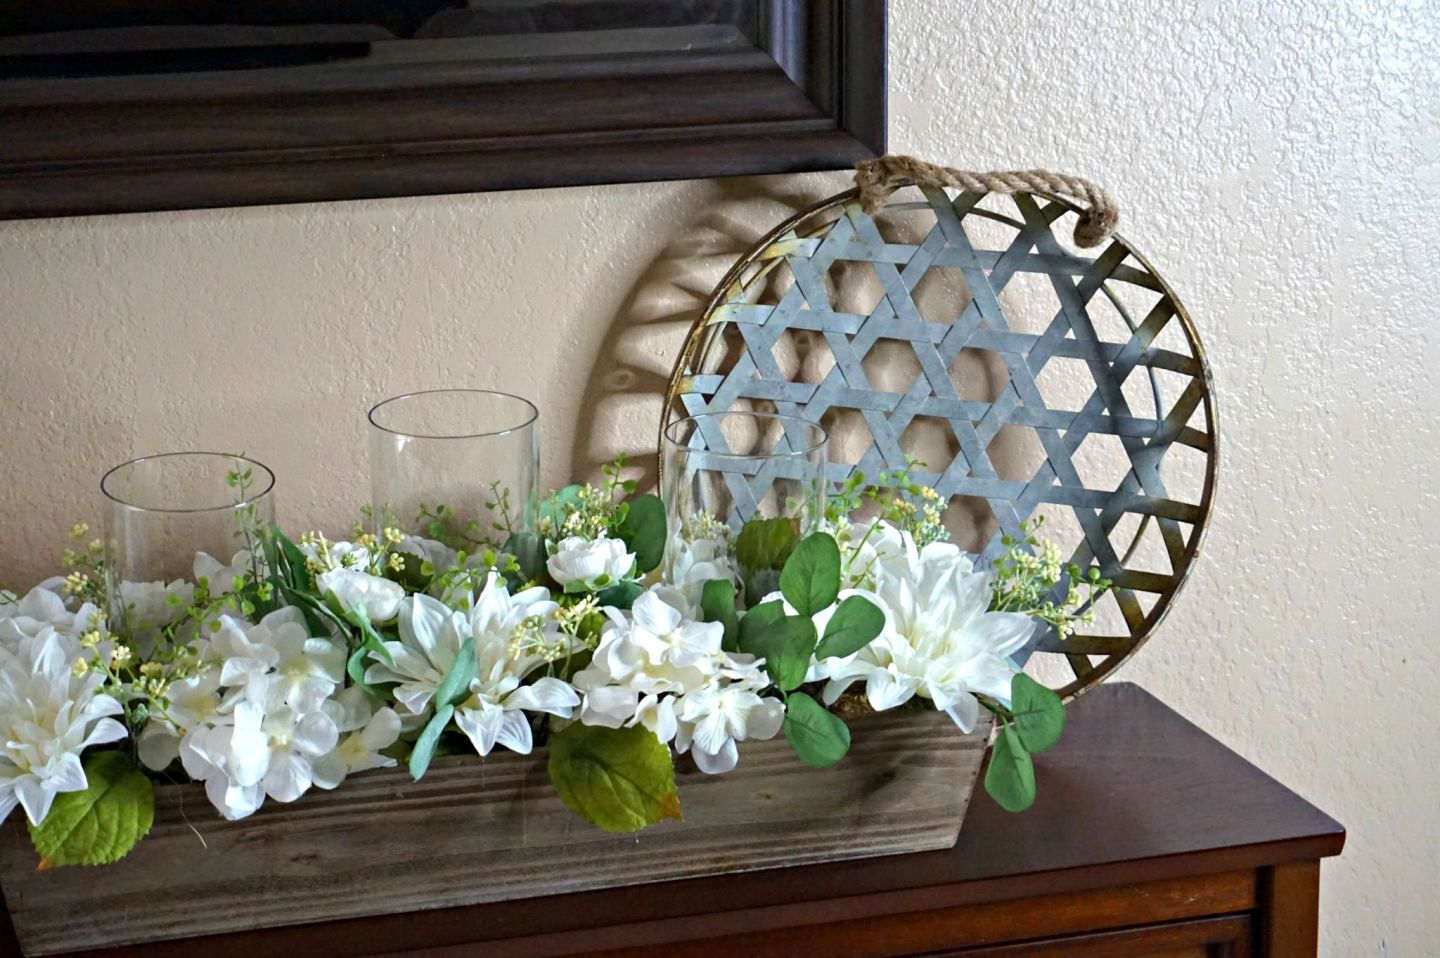 How To Decorate A Small Entryway // How To Decorate A Small Space // Small Space Solutions // How To Decorate // Rustic Chic Decor // Decorating Tips | Beauty With Lily #ad #homedecorlover